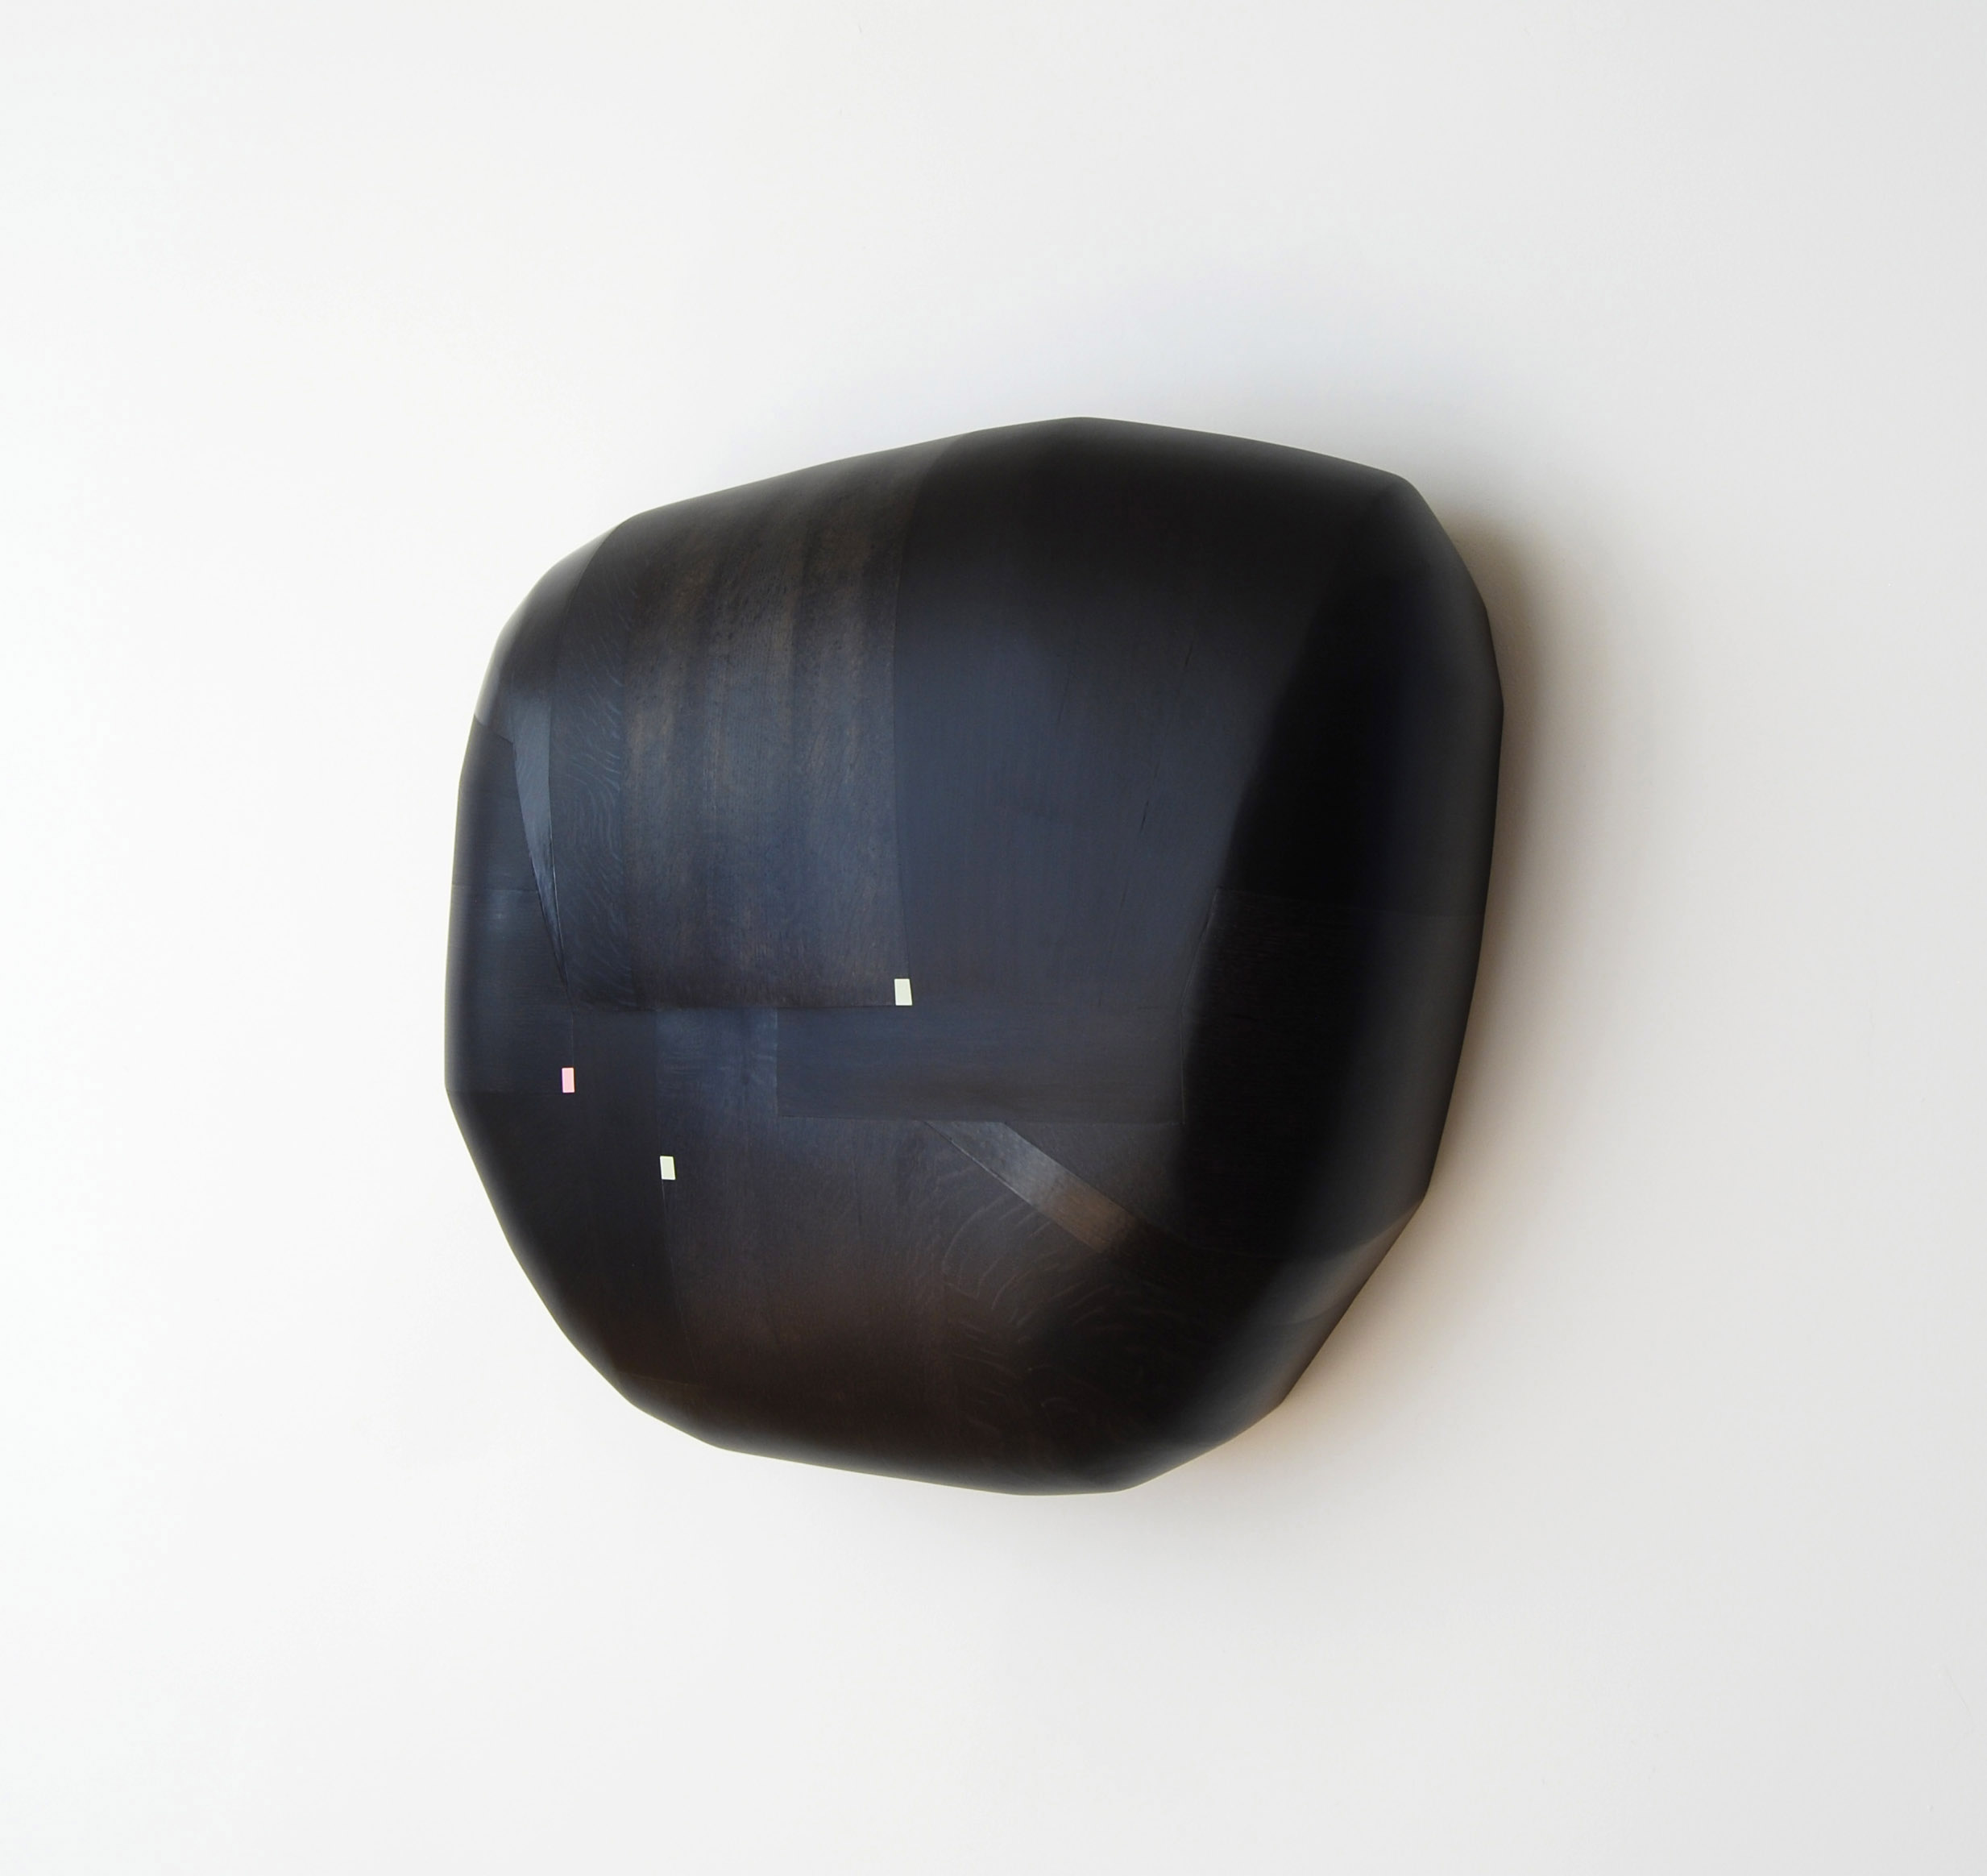 Breastplate, 2018  23 x 25 x 12 inches  wood, stain, paint